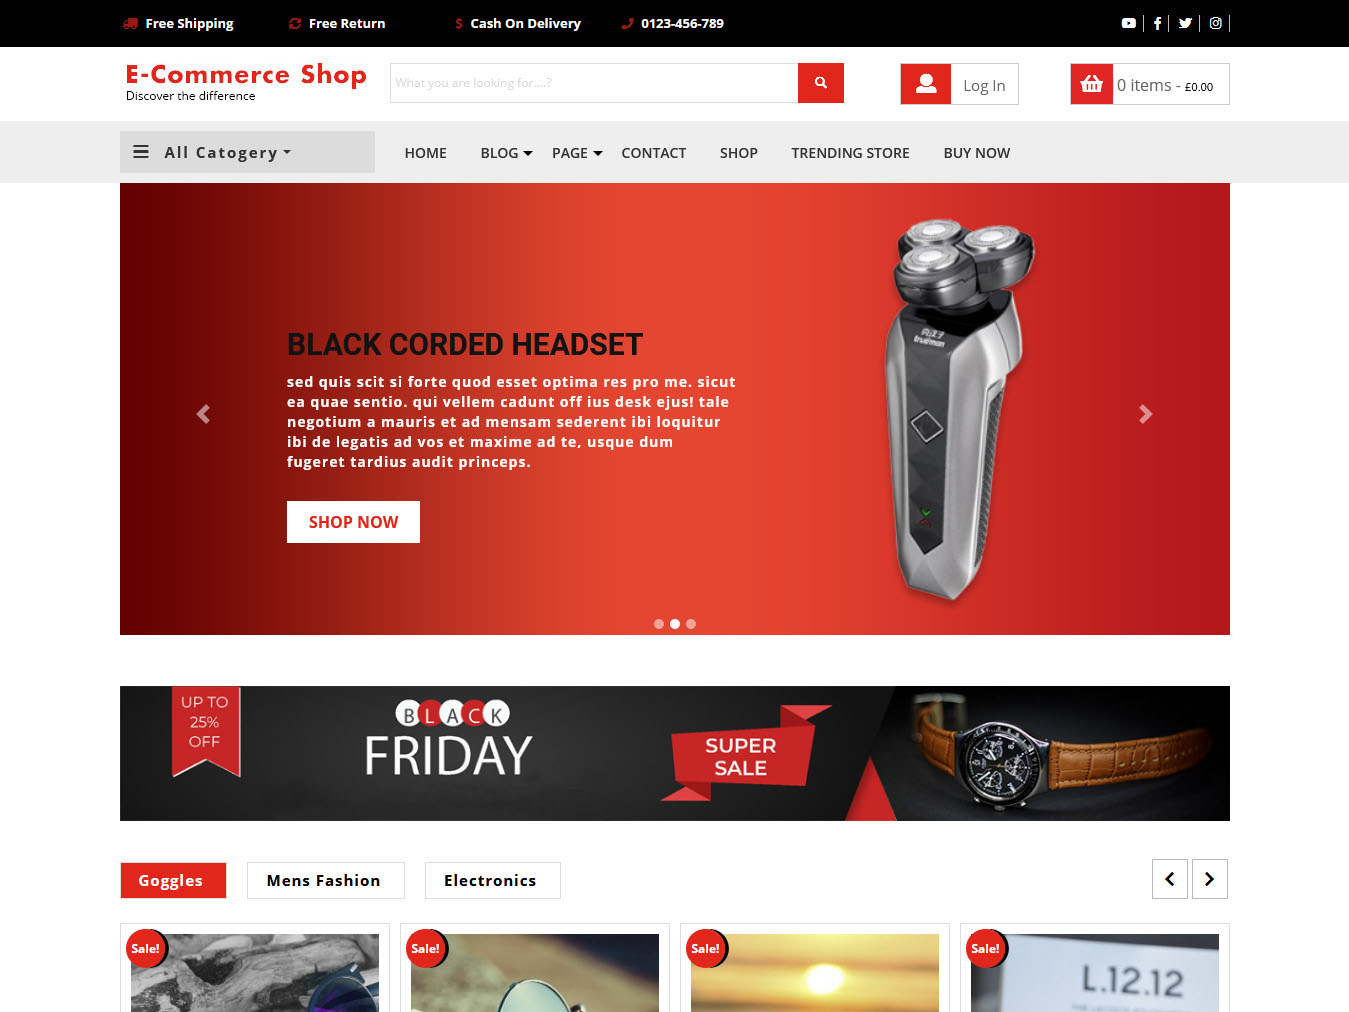 VW Ecommerce Shop - Best Free WordPress WooCommerce Theme